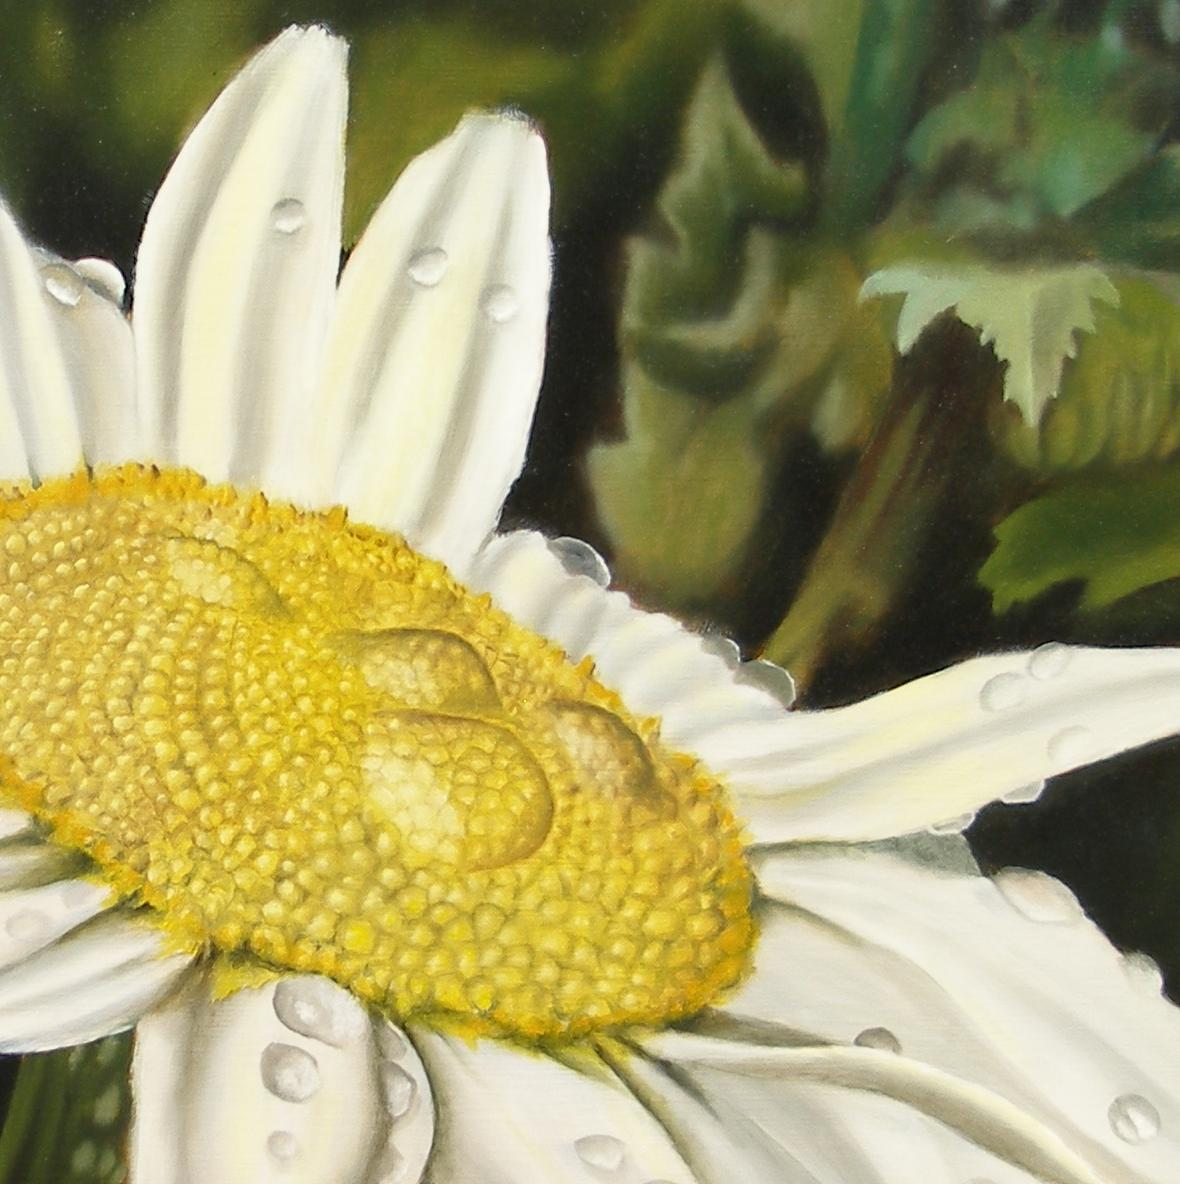 daisy with dew drops painting